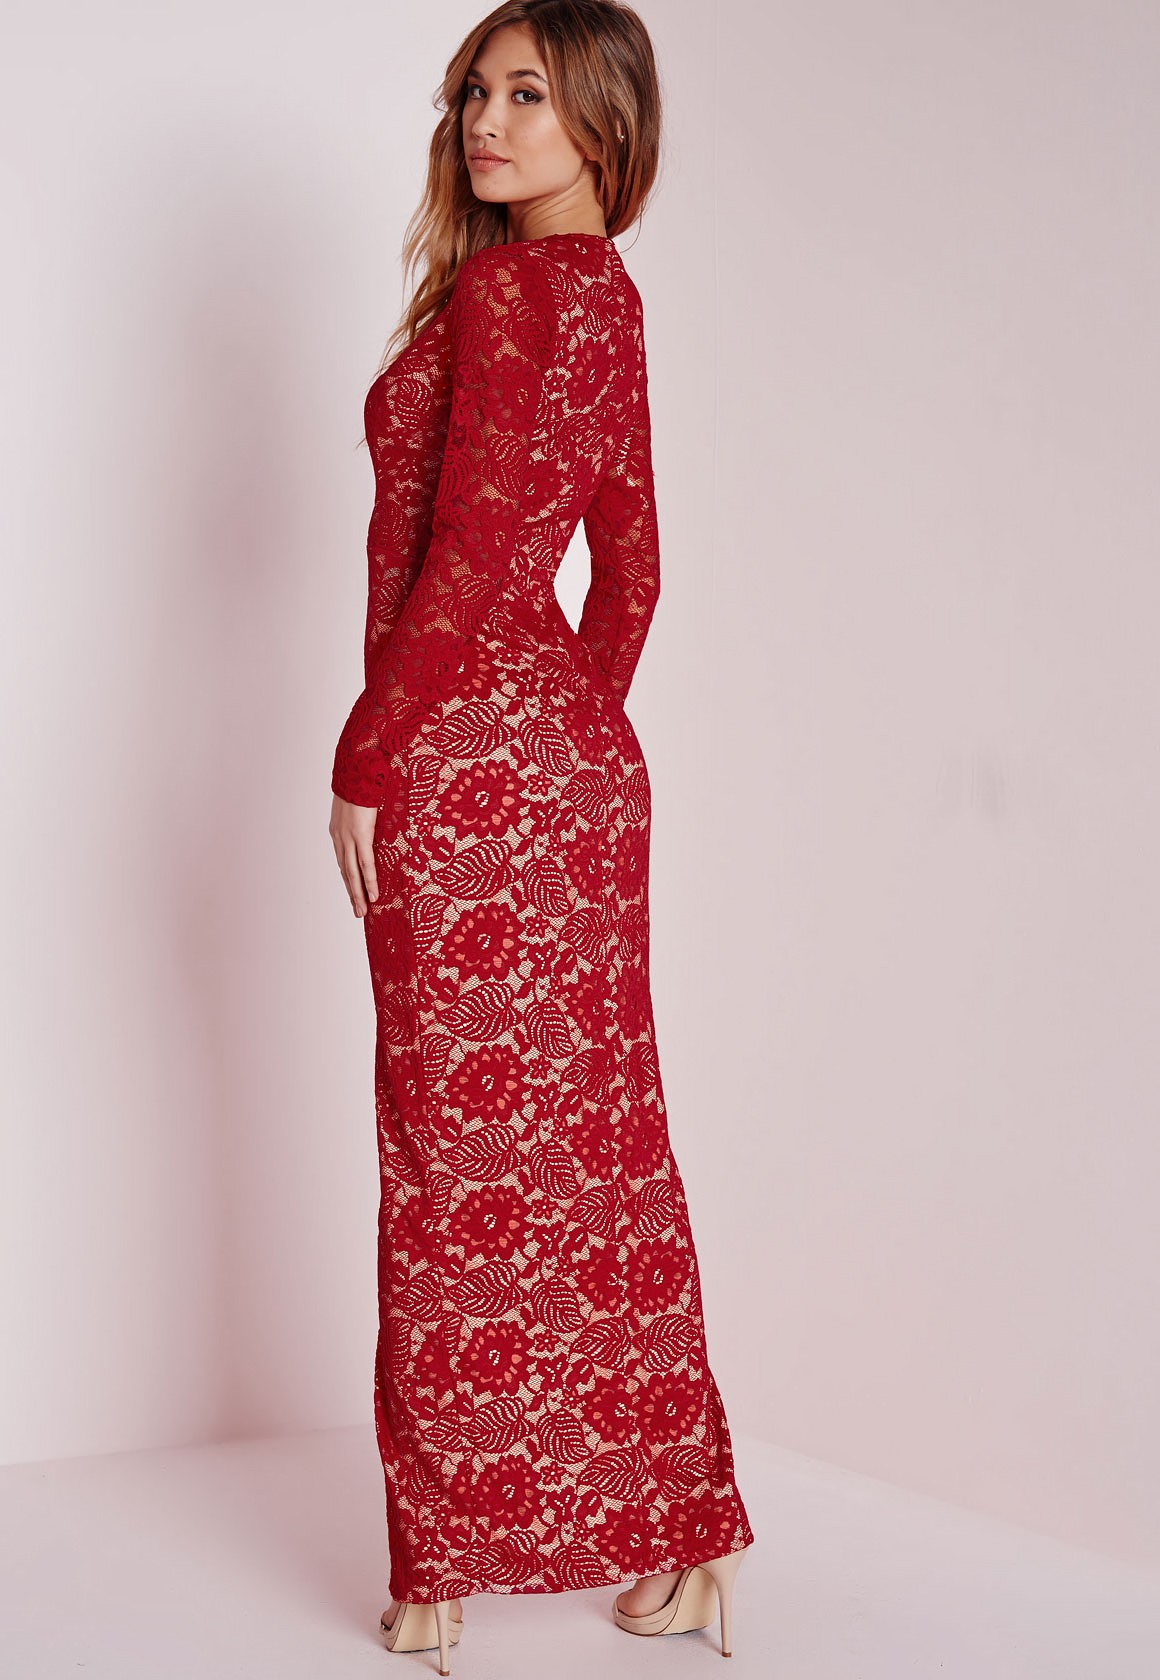 Red lace long sleeve maxi dress